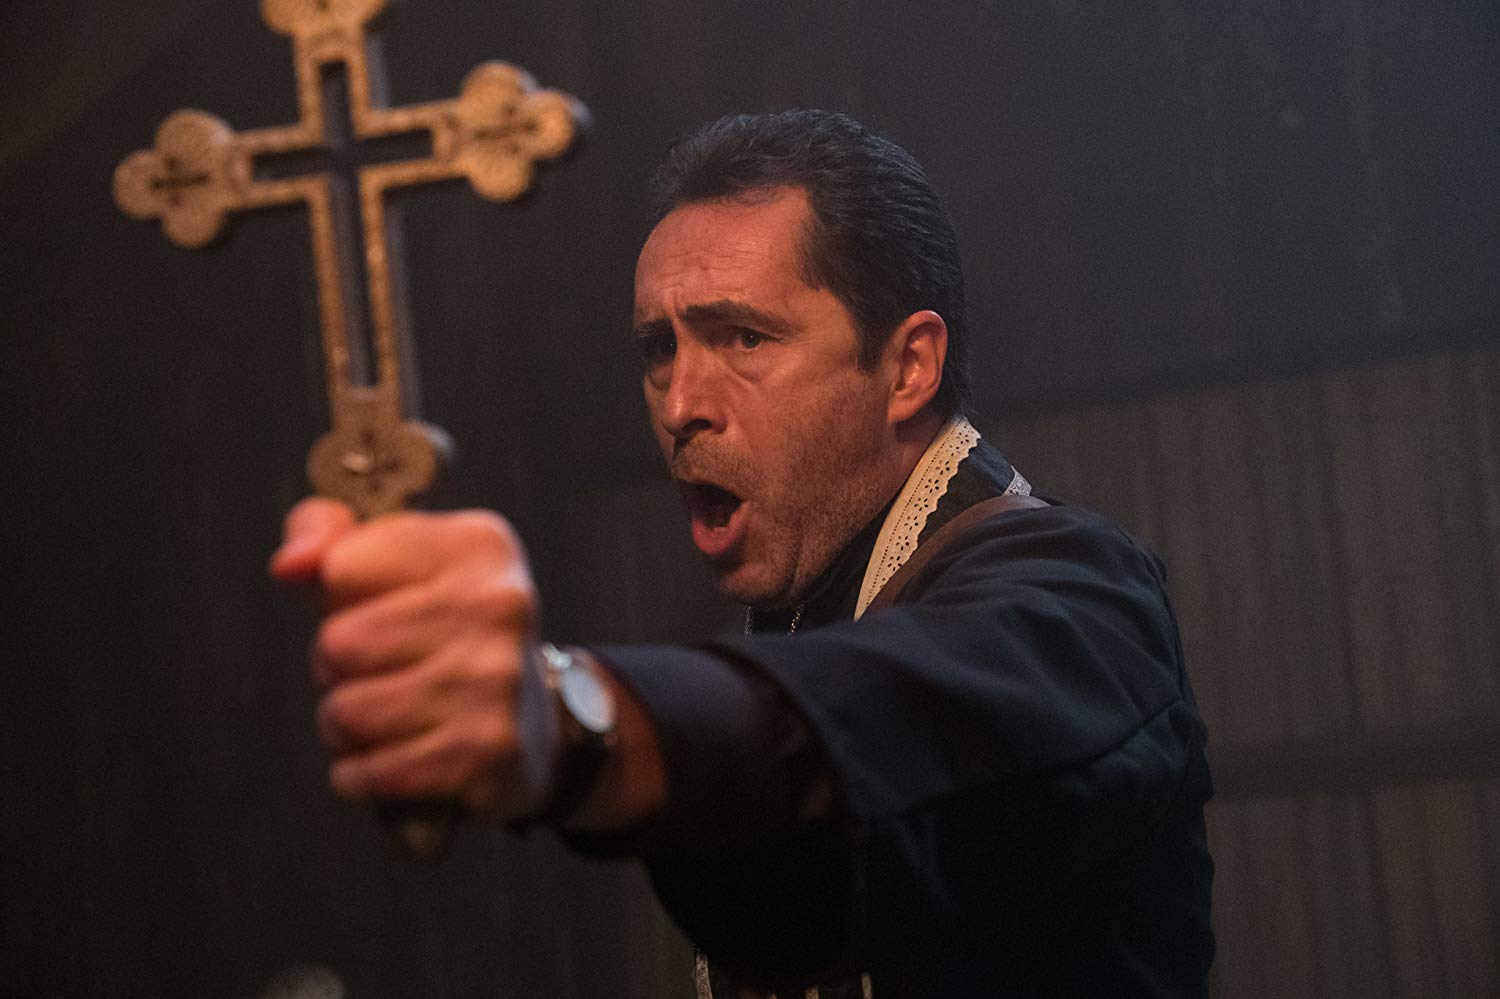 Demián Bichir On Playing a Priest in Creepy Horror Flick 'The Nun'